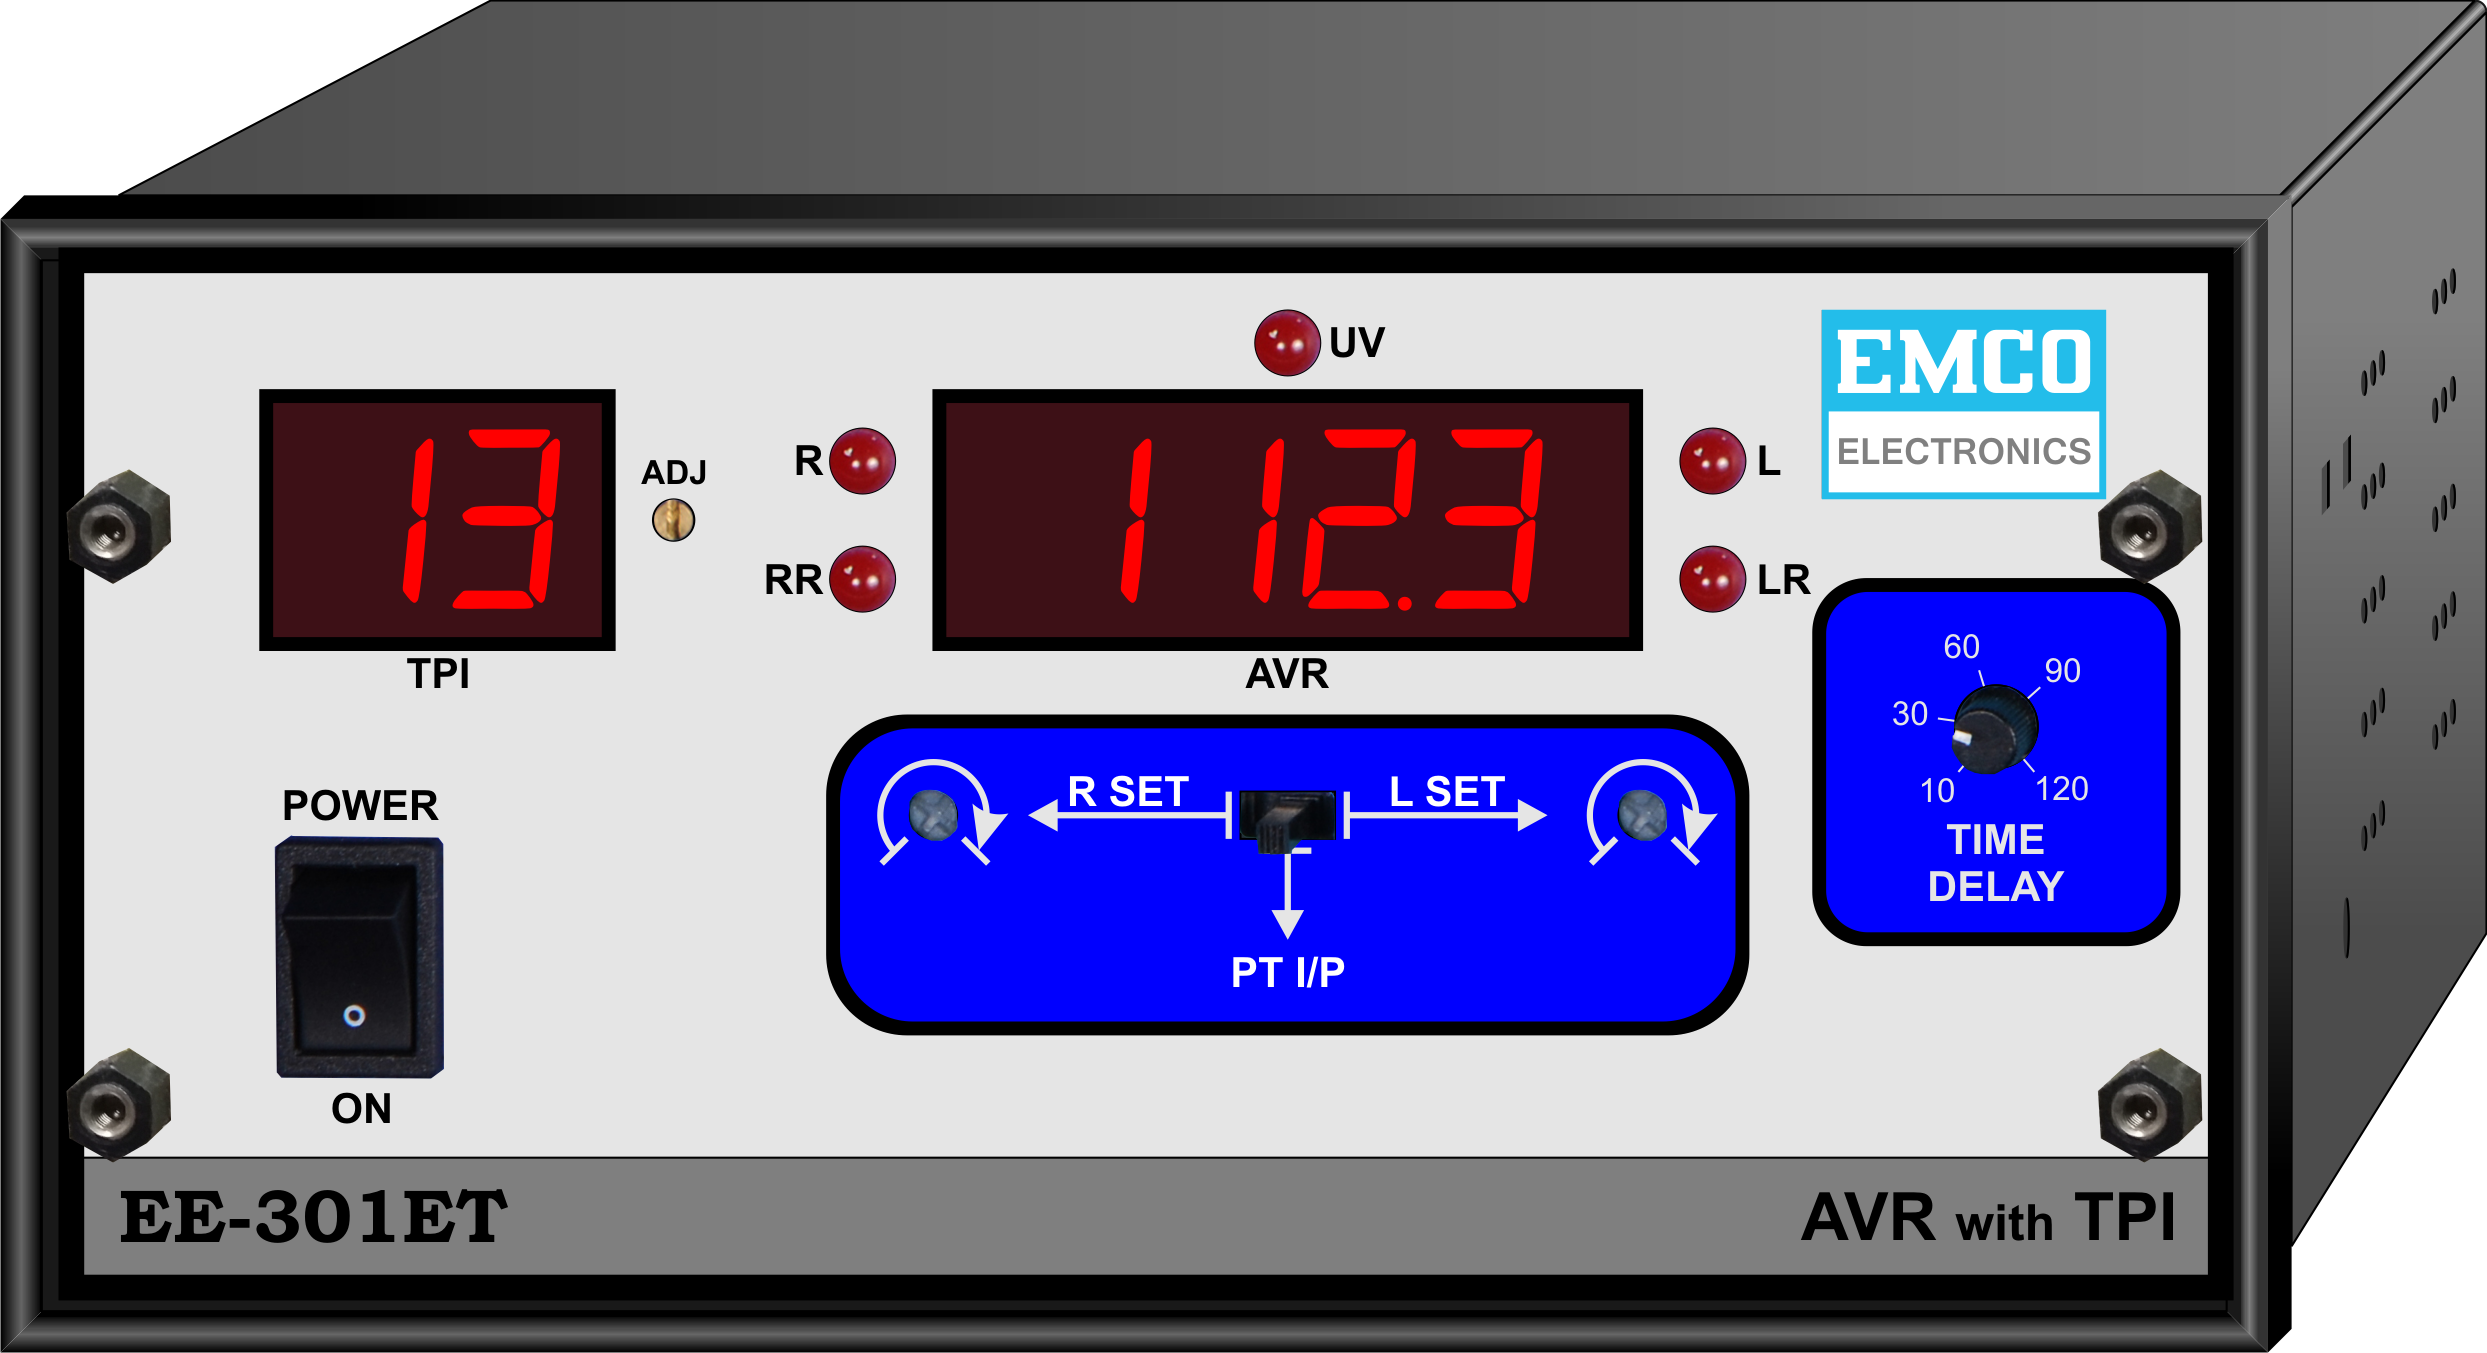 Emco Electronics Ee 301et Economy Avr With Tpi Relay Circuit Automatic Voltage Regulating